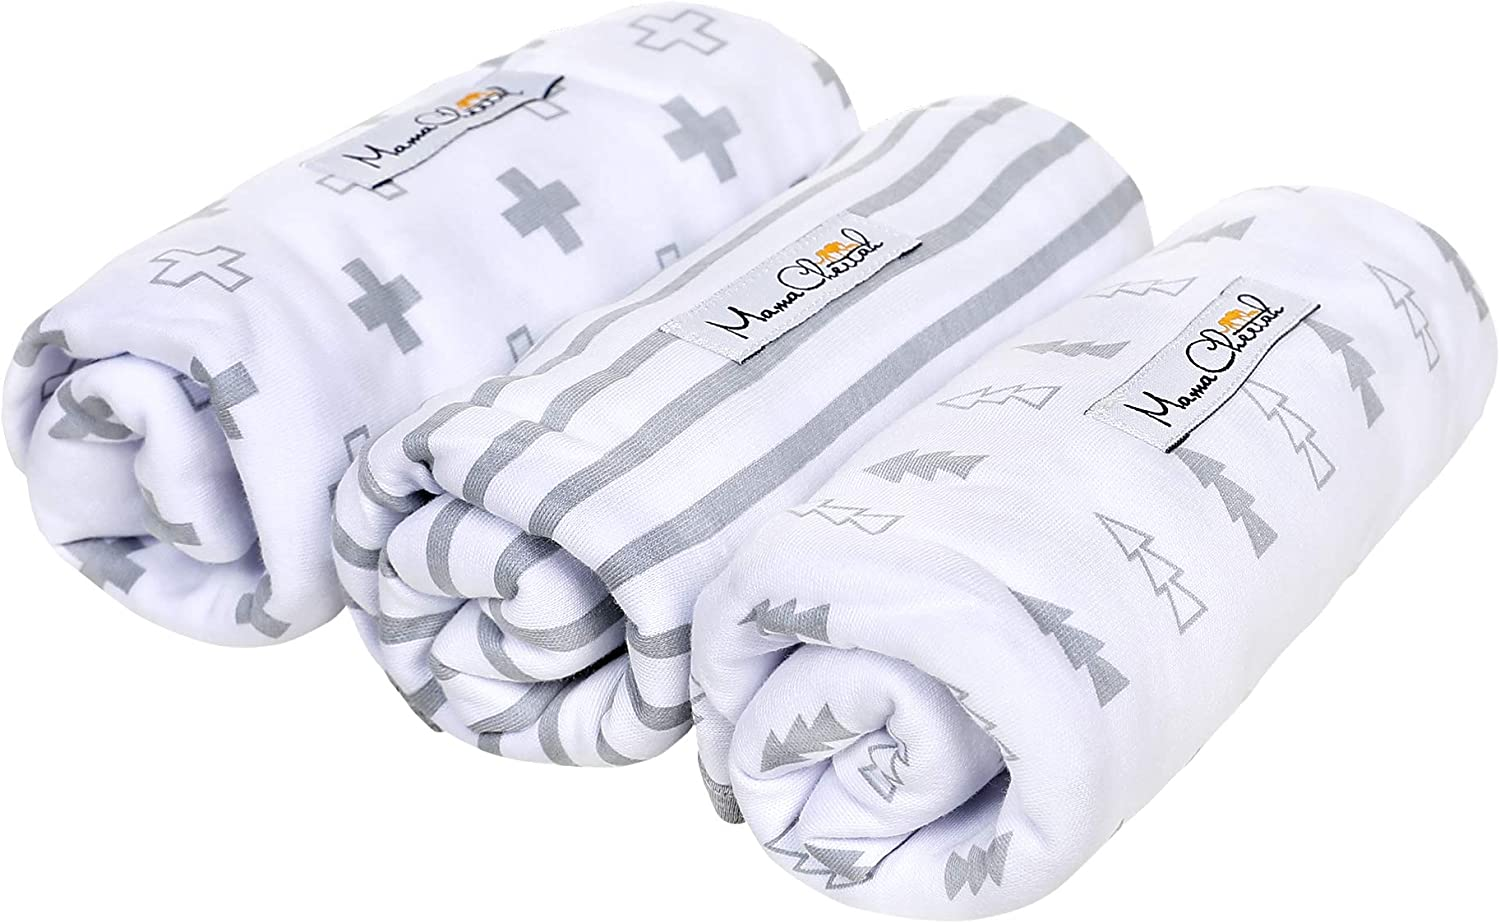 Swaddle Wrap for Newborn Soft Organic Cotton Baby Swaddle Blanket 0-3 Months Adjustable Swaddles Cool Grey Small